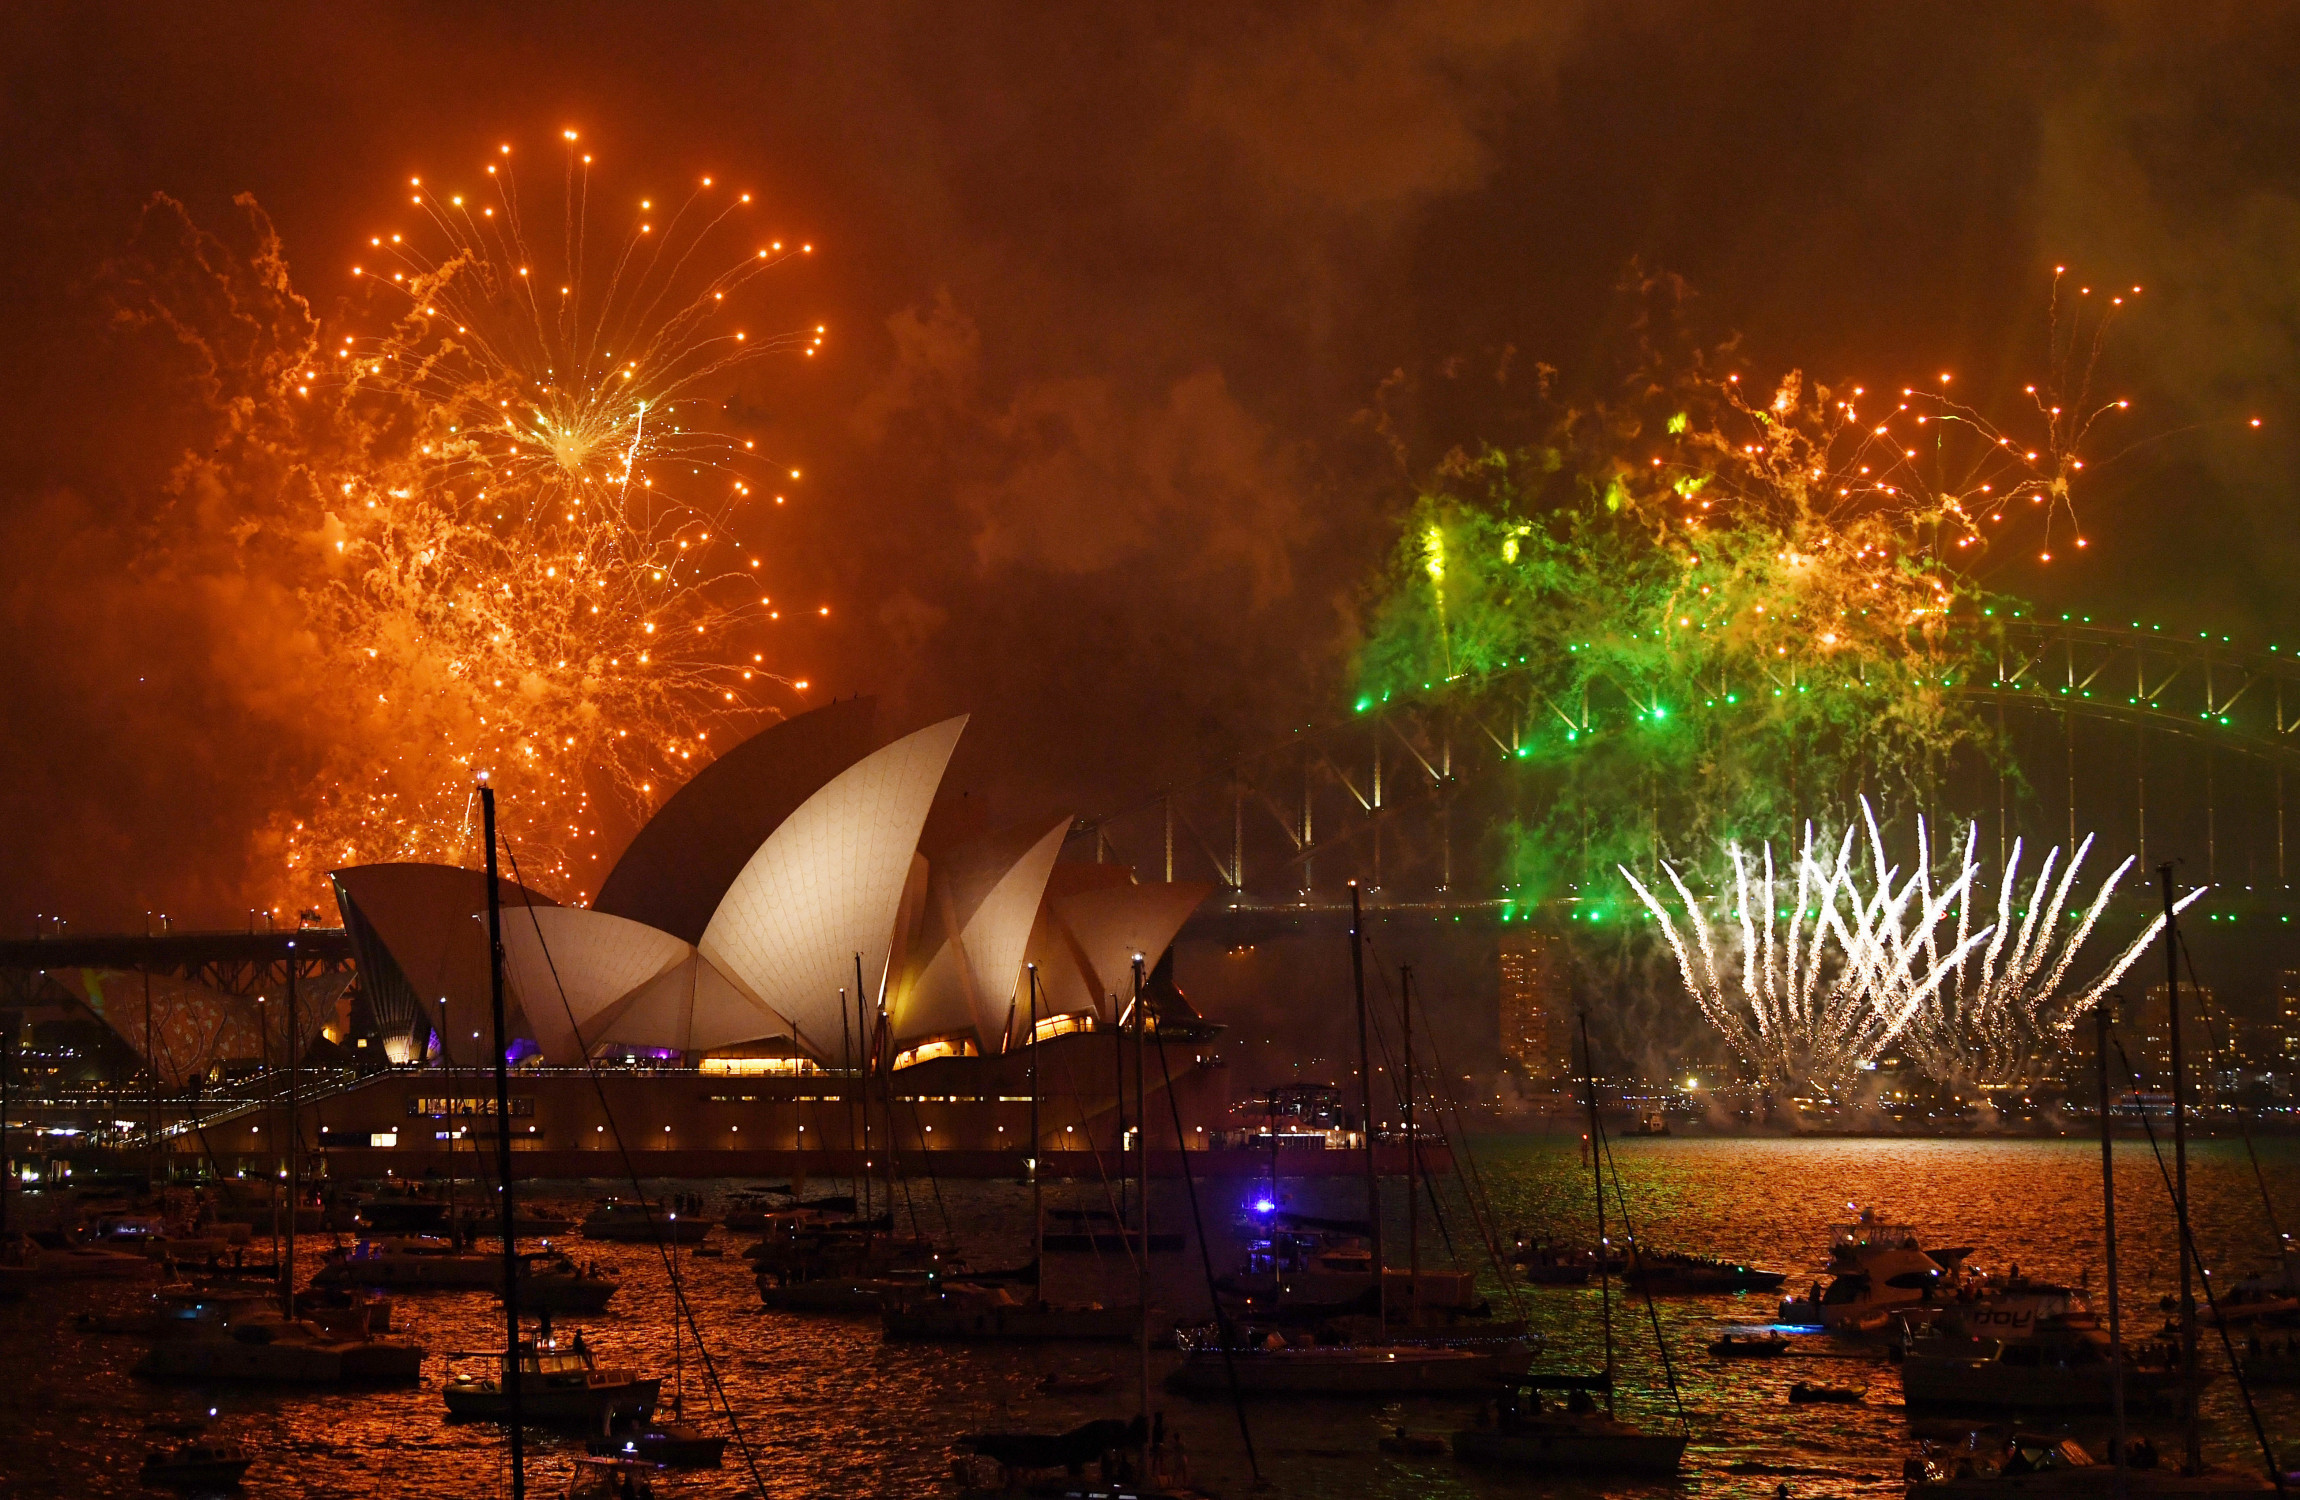 They're already ringing in the new year around the world